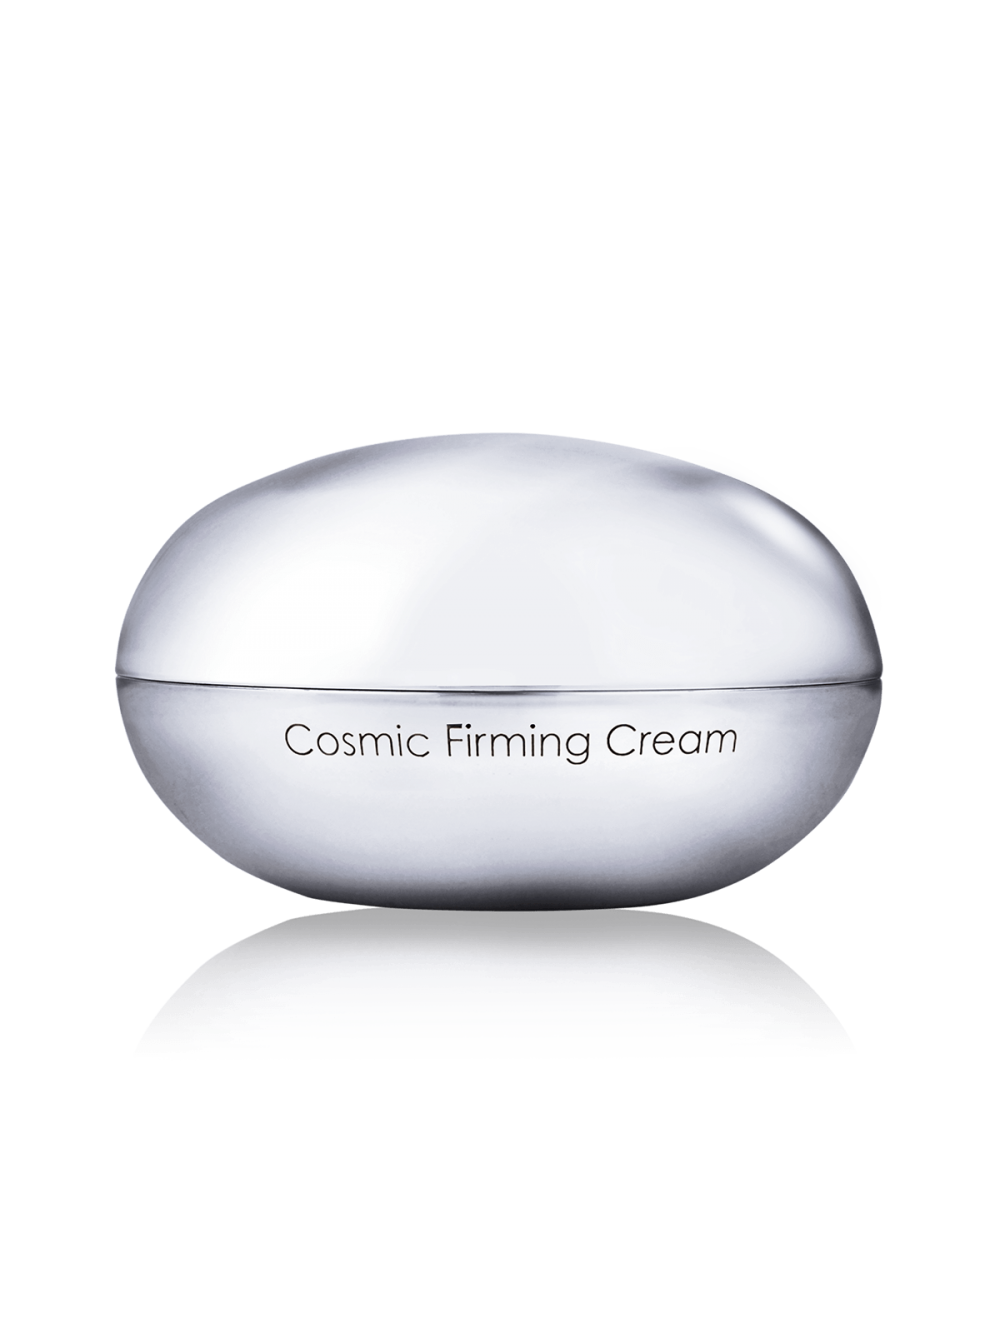 Cosmic Firming Cream back